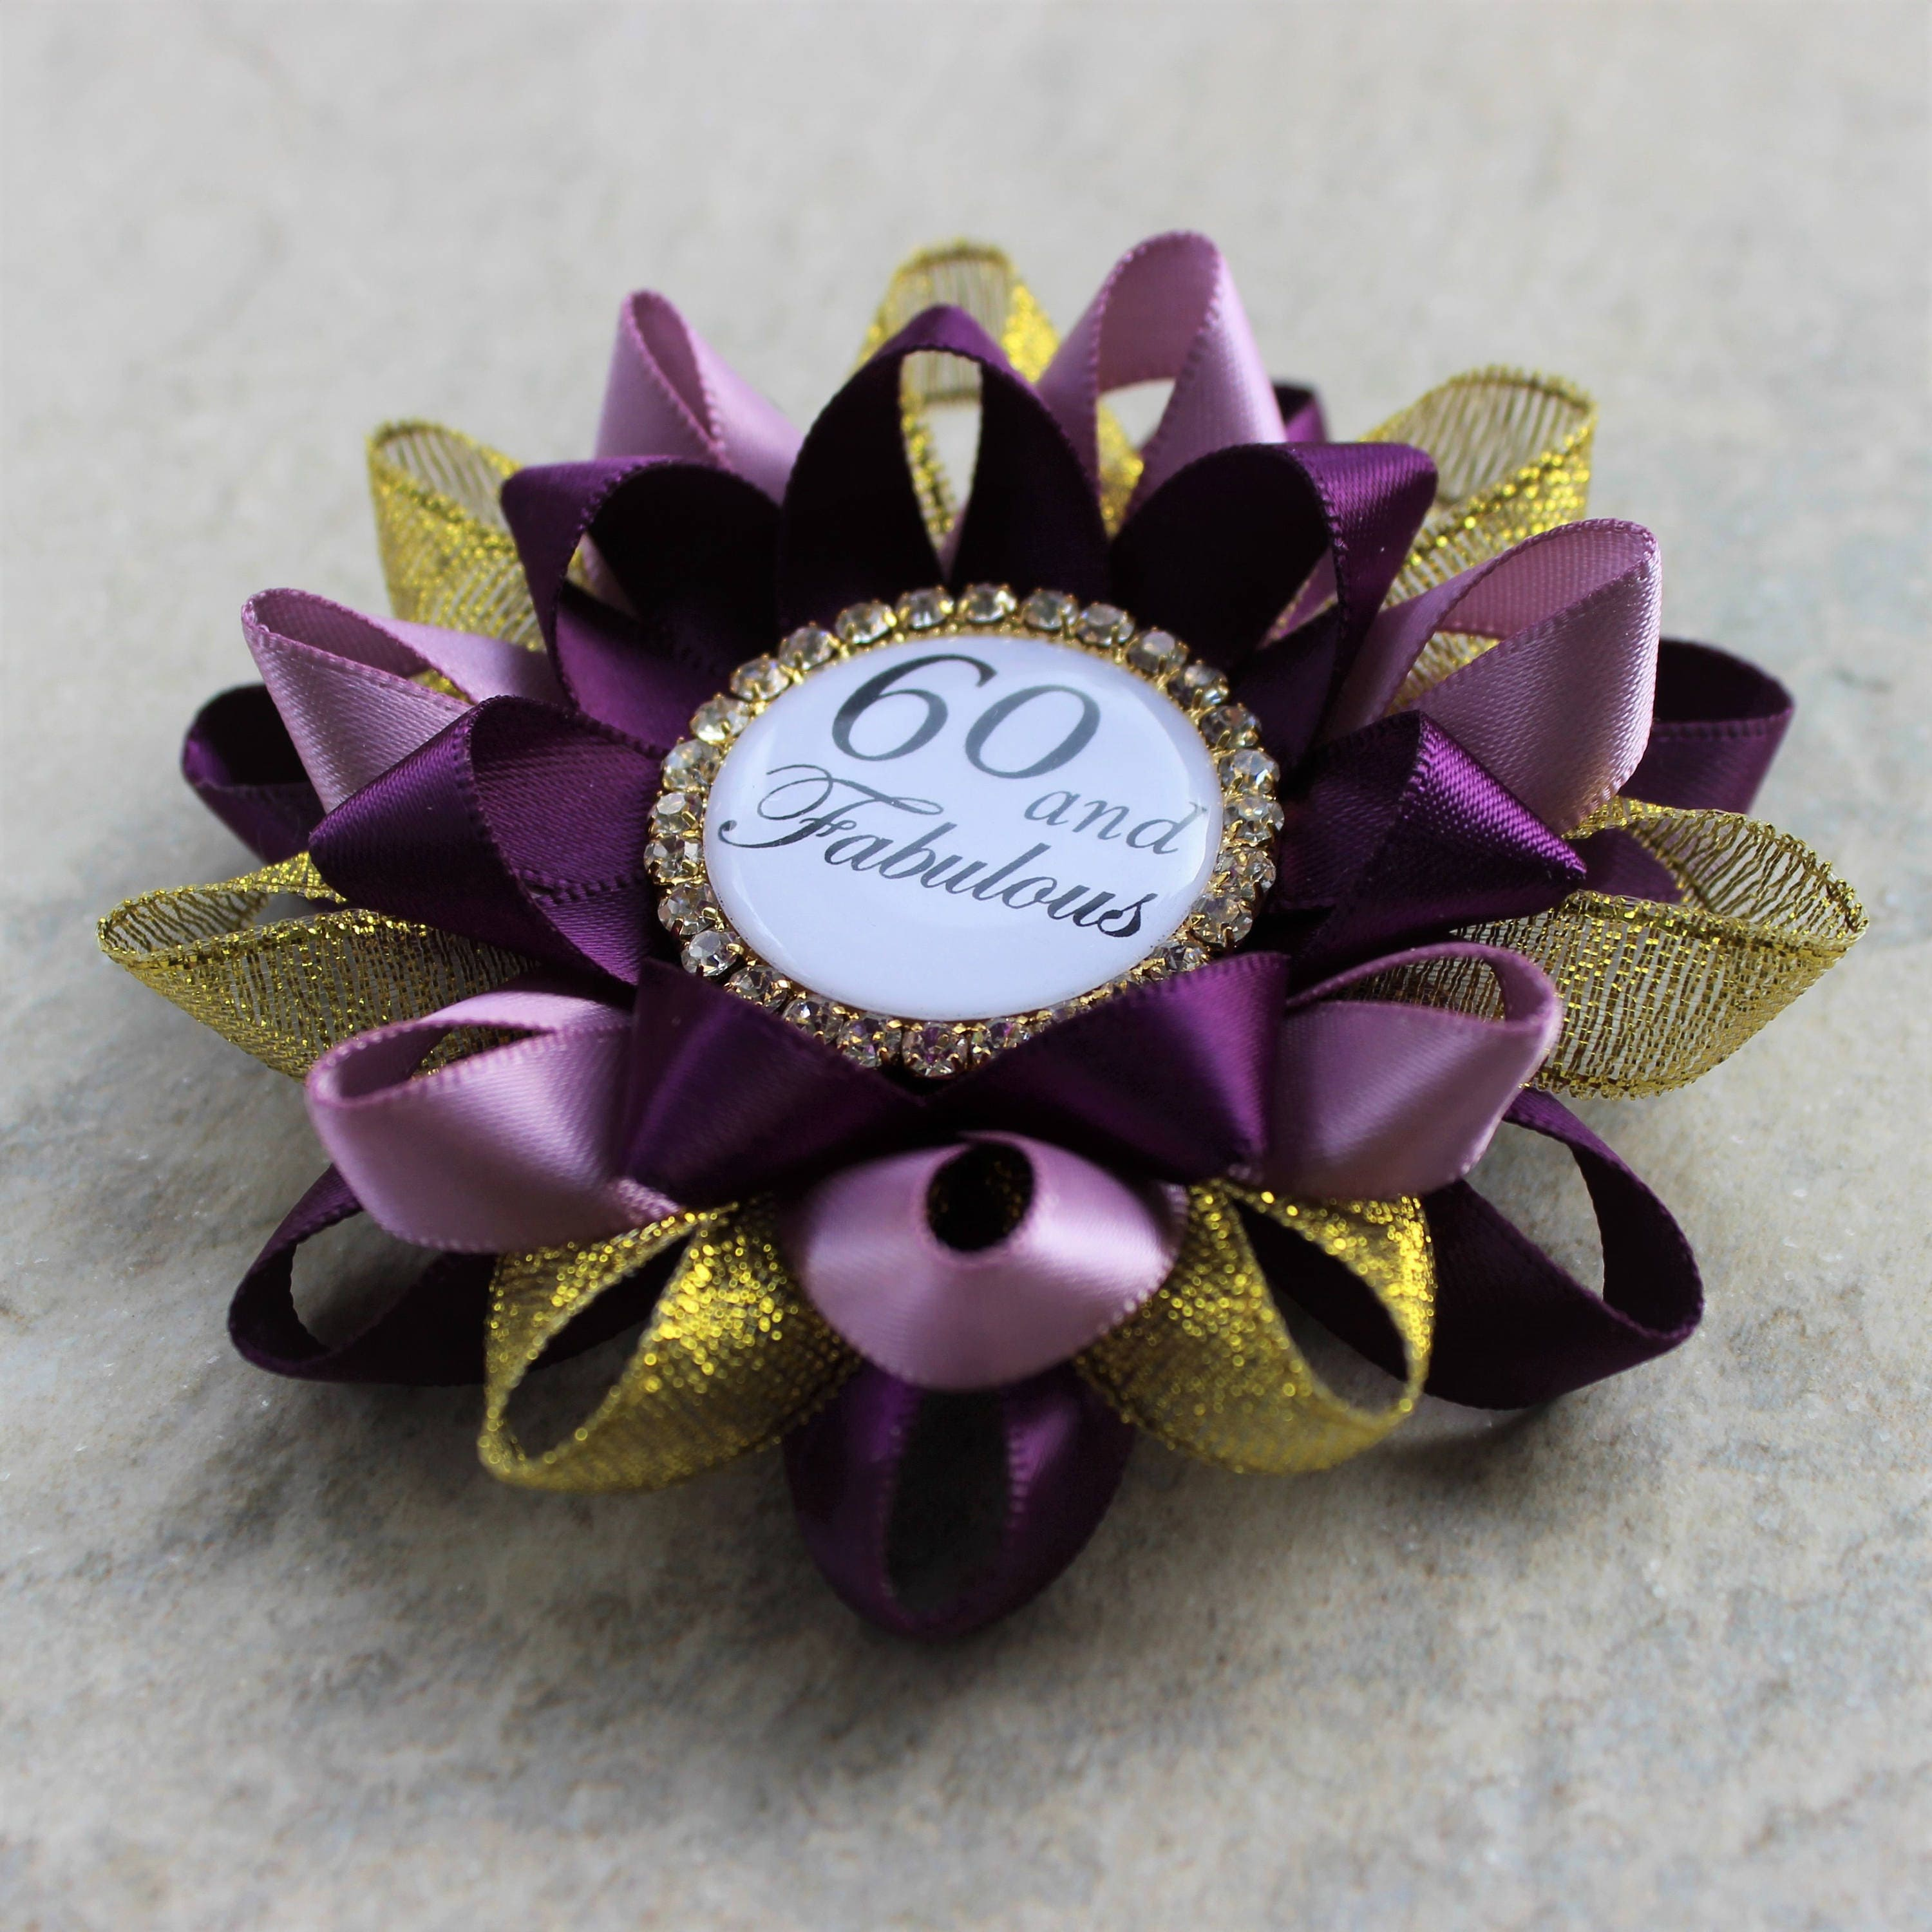 60th Birthday Gifts For Women Pin Gift Mom Sixtieth Party Decorations Deep PurpleGold Thistle